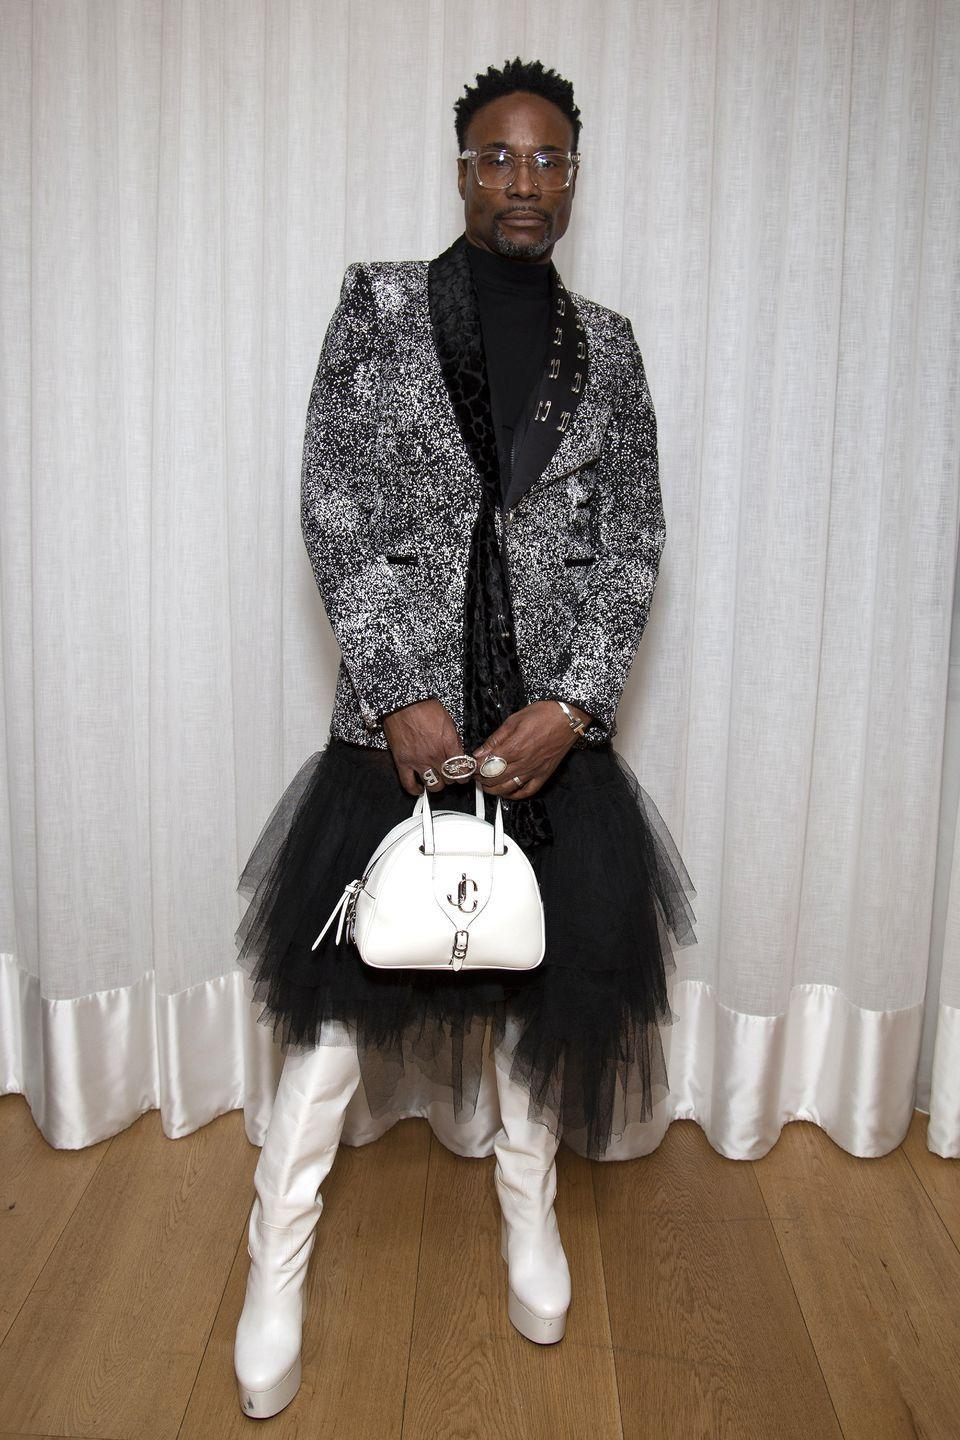 <p>The actor wore a black tulle skirt, white platform thigh-high boots and a monochrome printed blazer to the Matty Bovan fashion show at London Fashion Week February. The star styled the look with a white patent bag. </p>